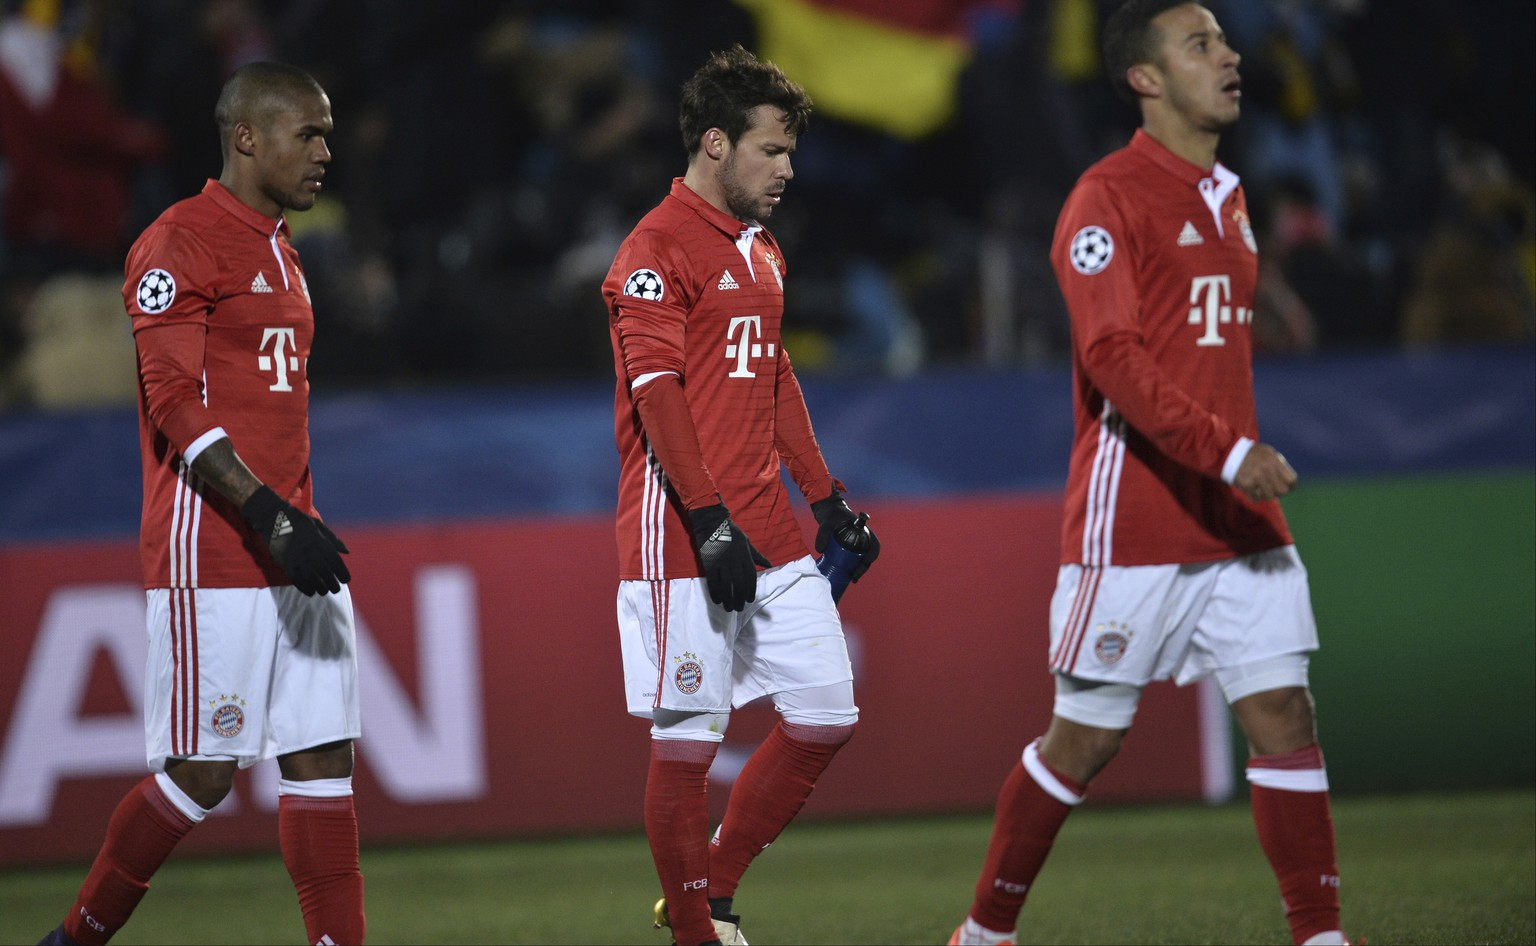 Bayern Munich's players leave the pitch after their team's 3-2 loss in the Champions League Group D soccer match between Rostov and Bayern in Rostov-on-Don, Russia, Wednesday, Nov. 23, 2016. (AP Photo/Sergey Pivovarov)